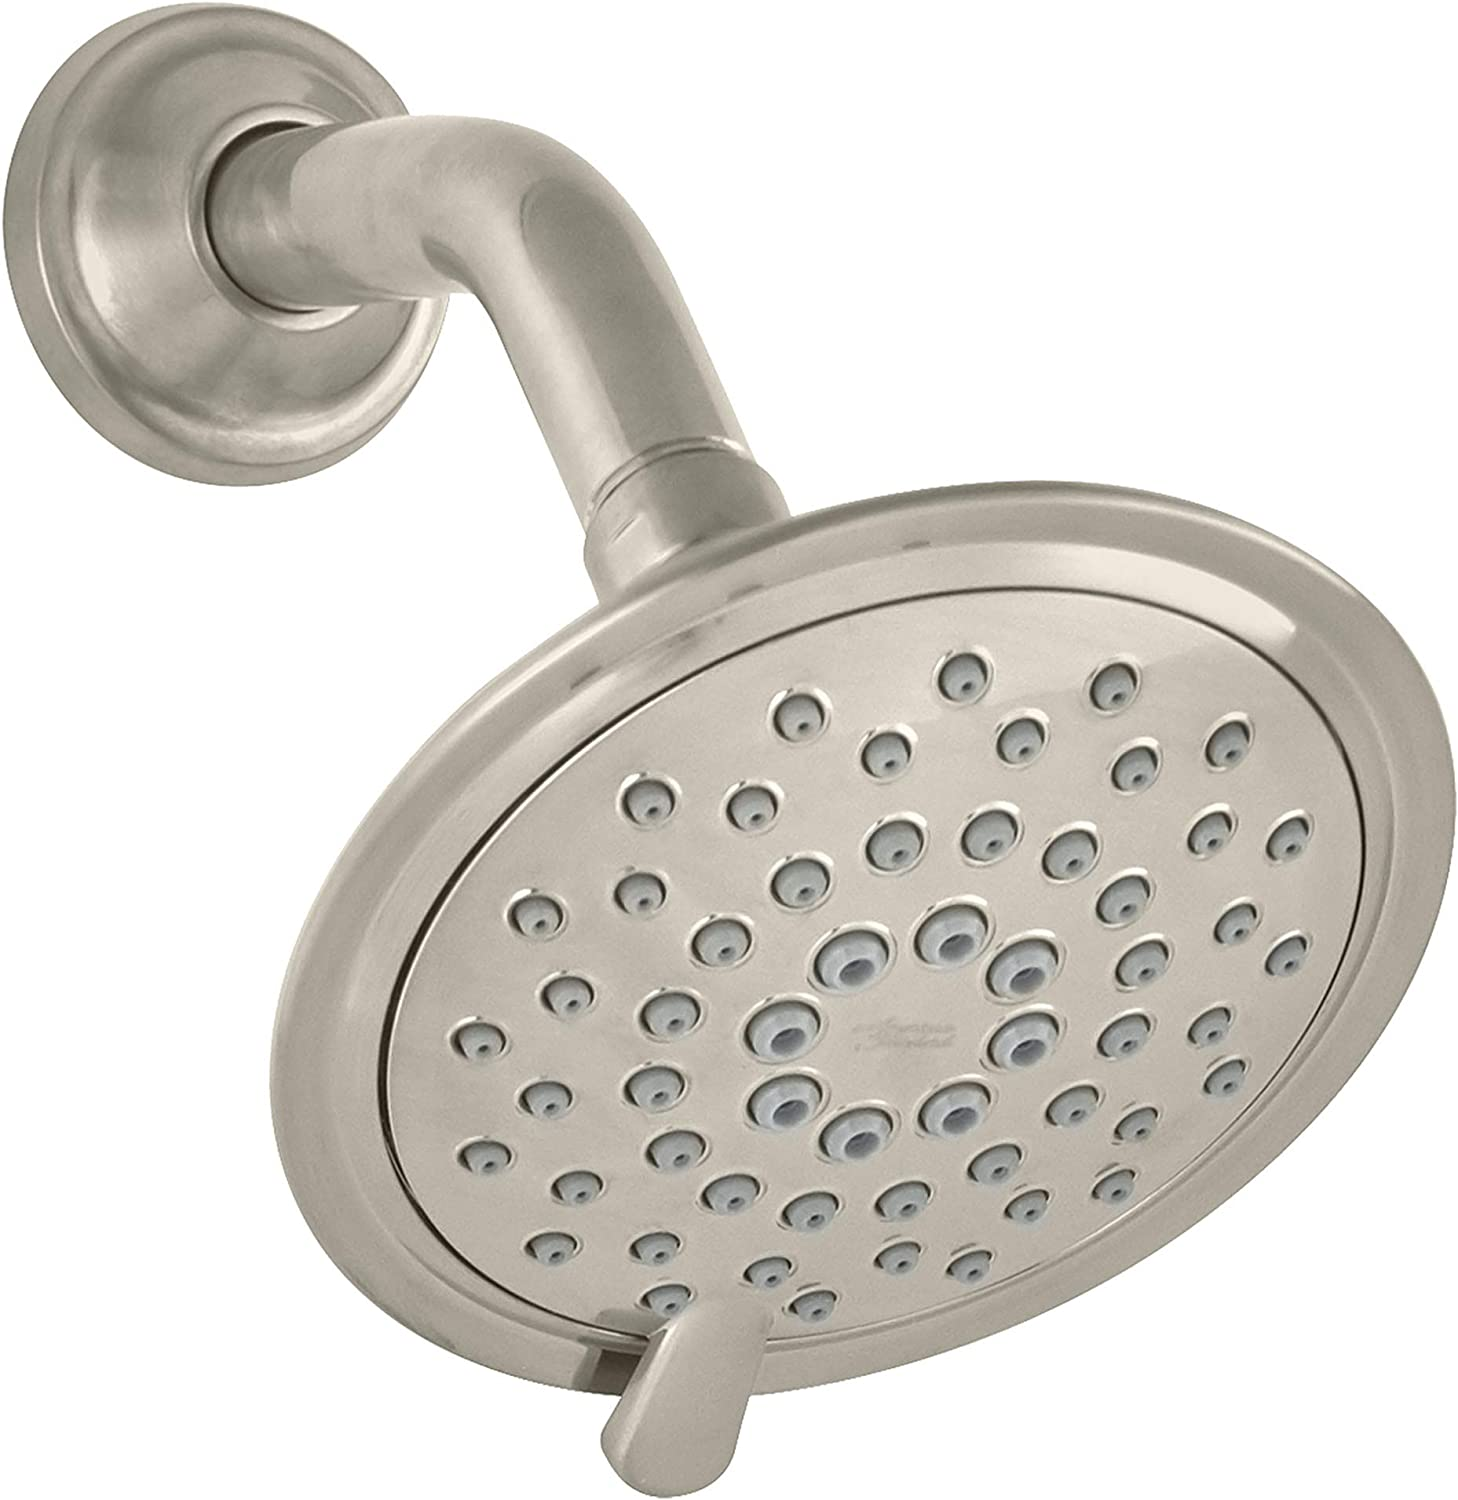 American Standard 1660739.295 3-Function Shower Head – 2.5 GPM, Brushed Nickel